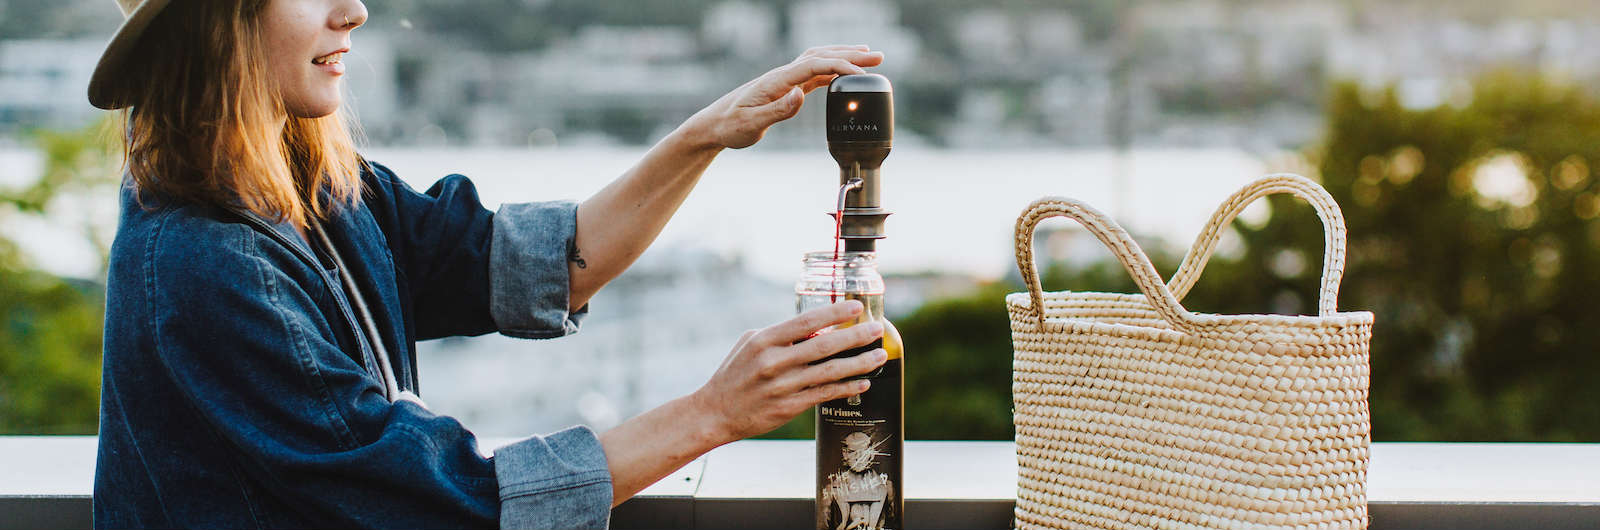 A Push-Button Device for Aerating Wine